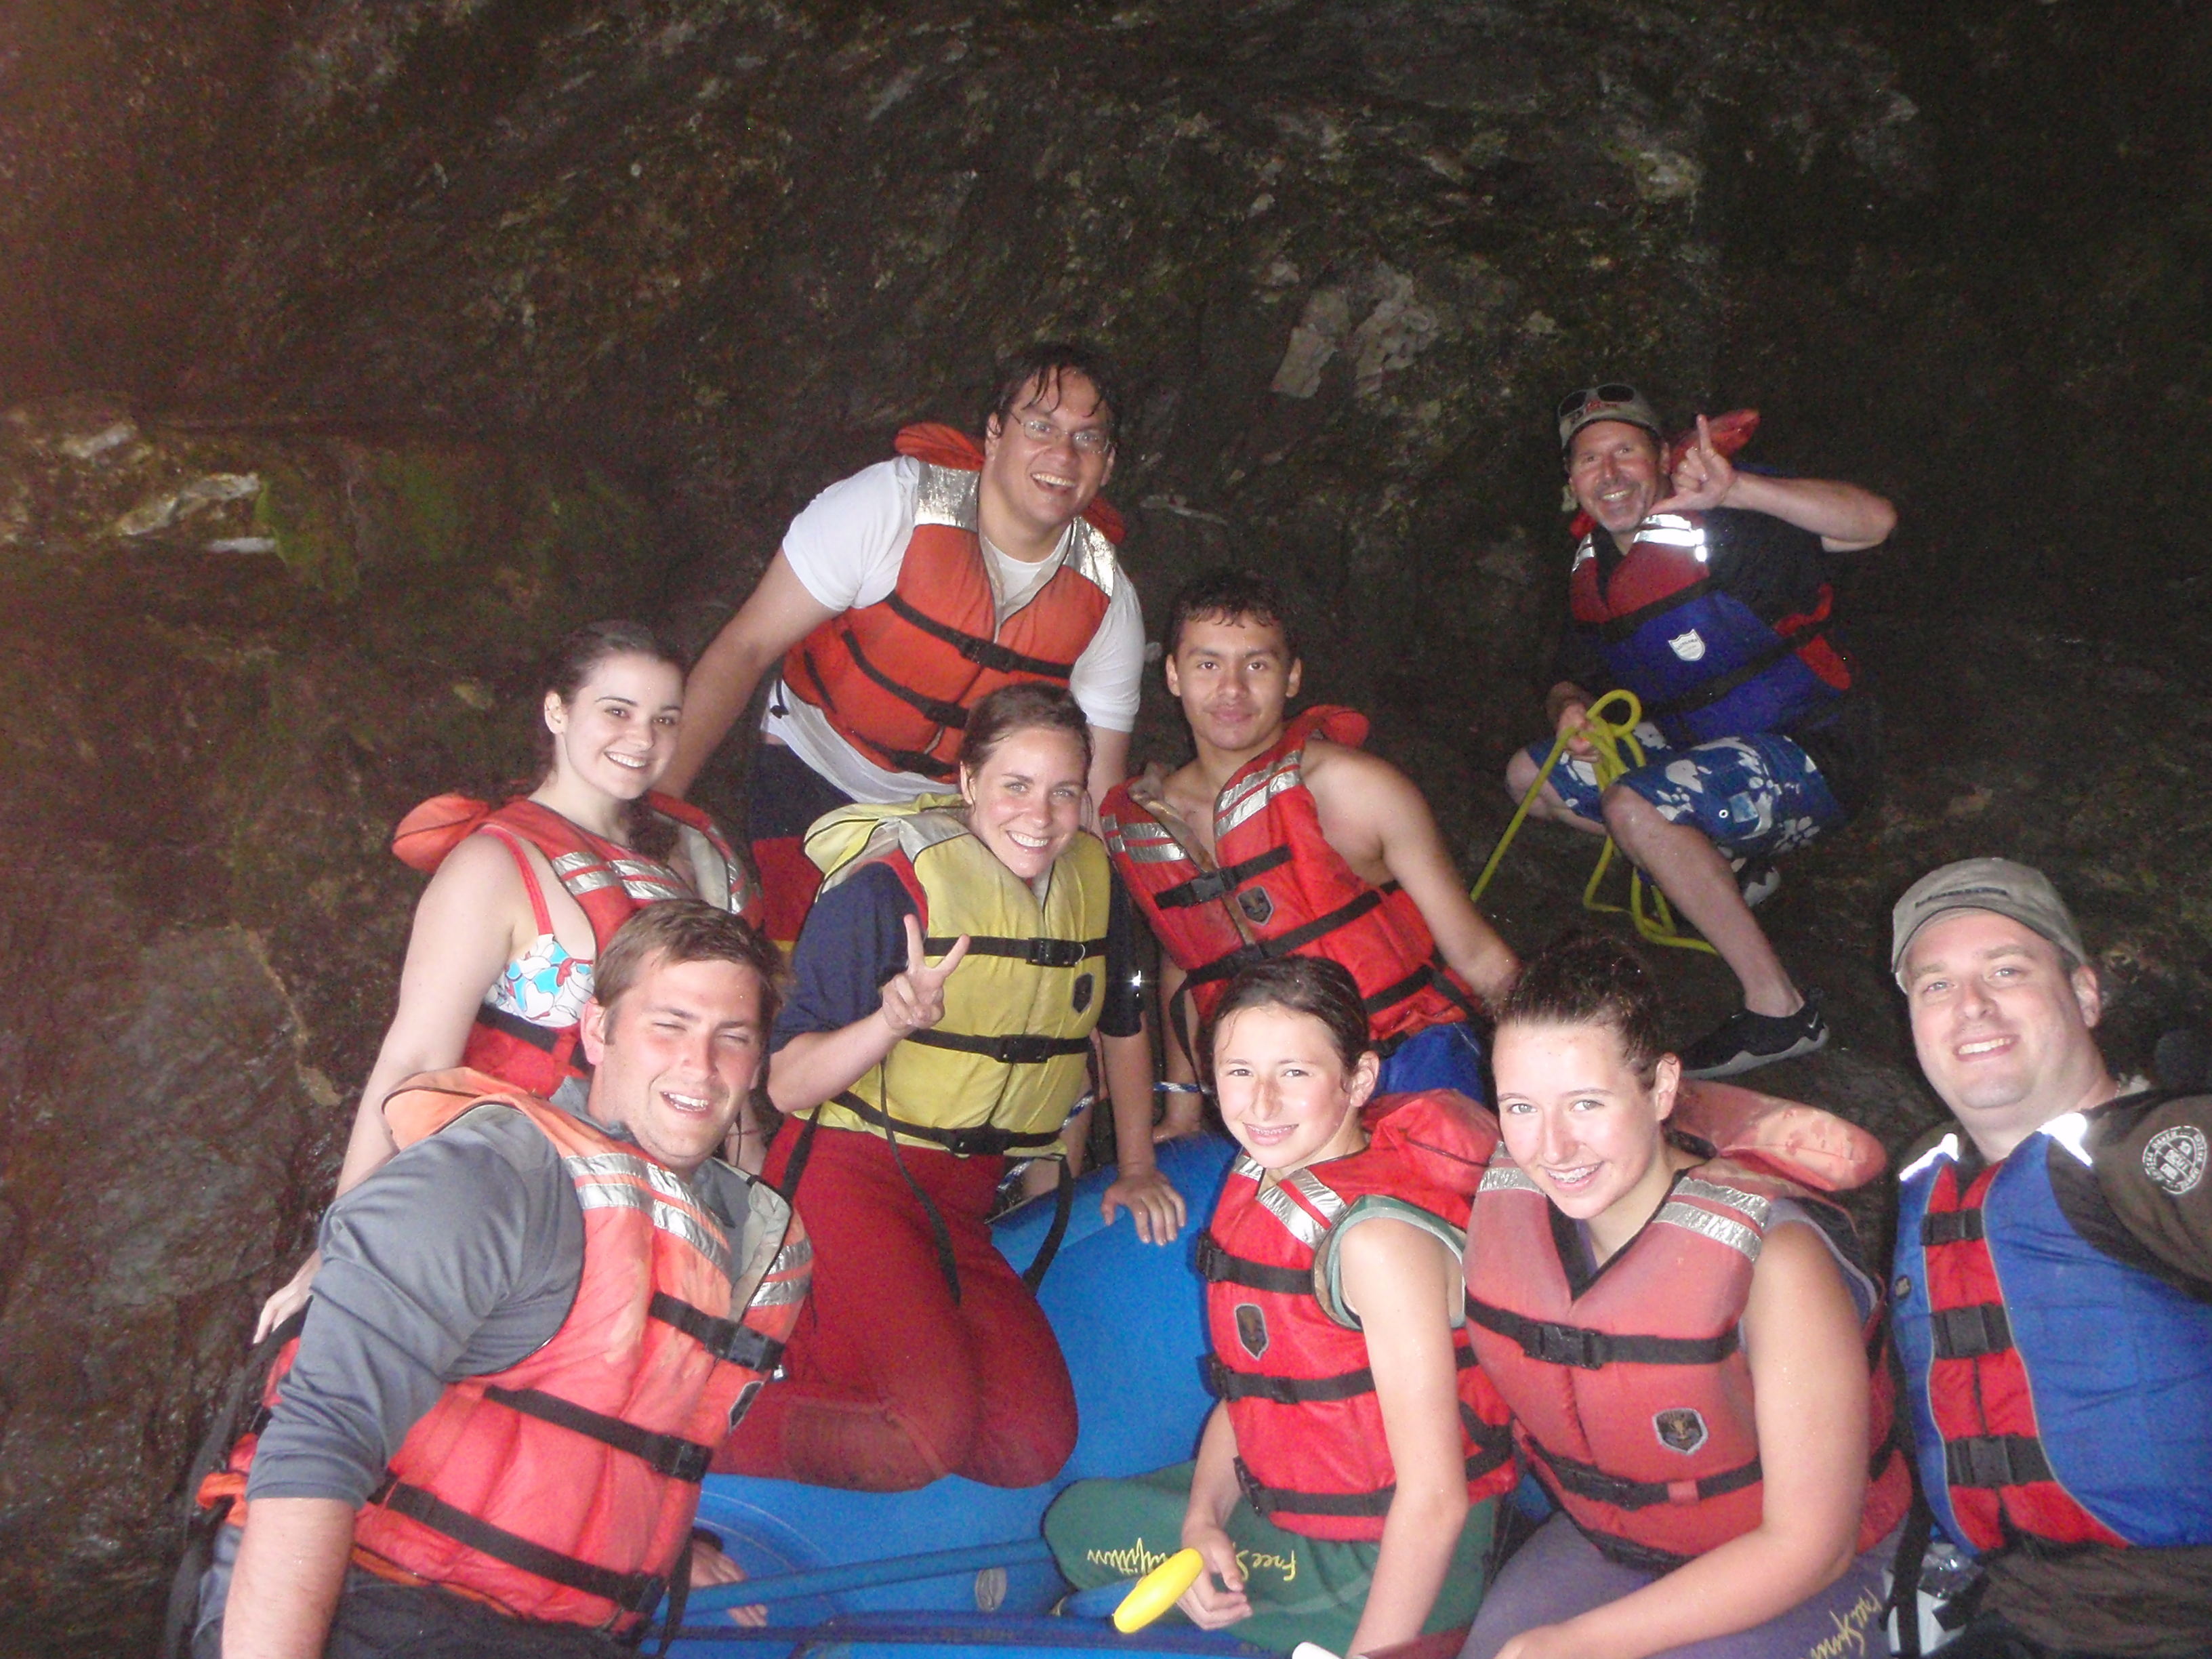 Tom (upper right) with come of the Geocaching HQ crew on a team outing